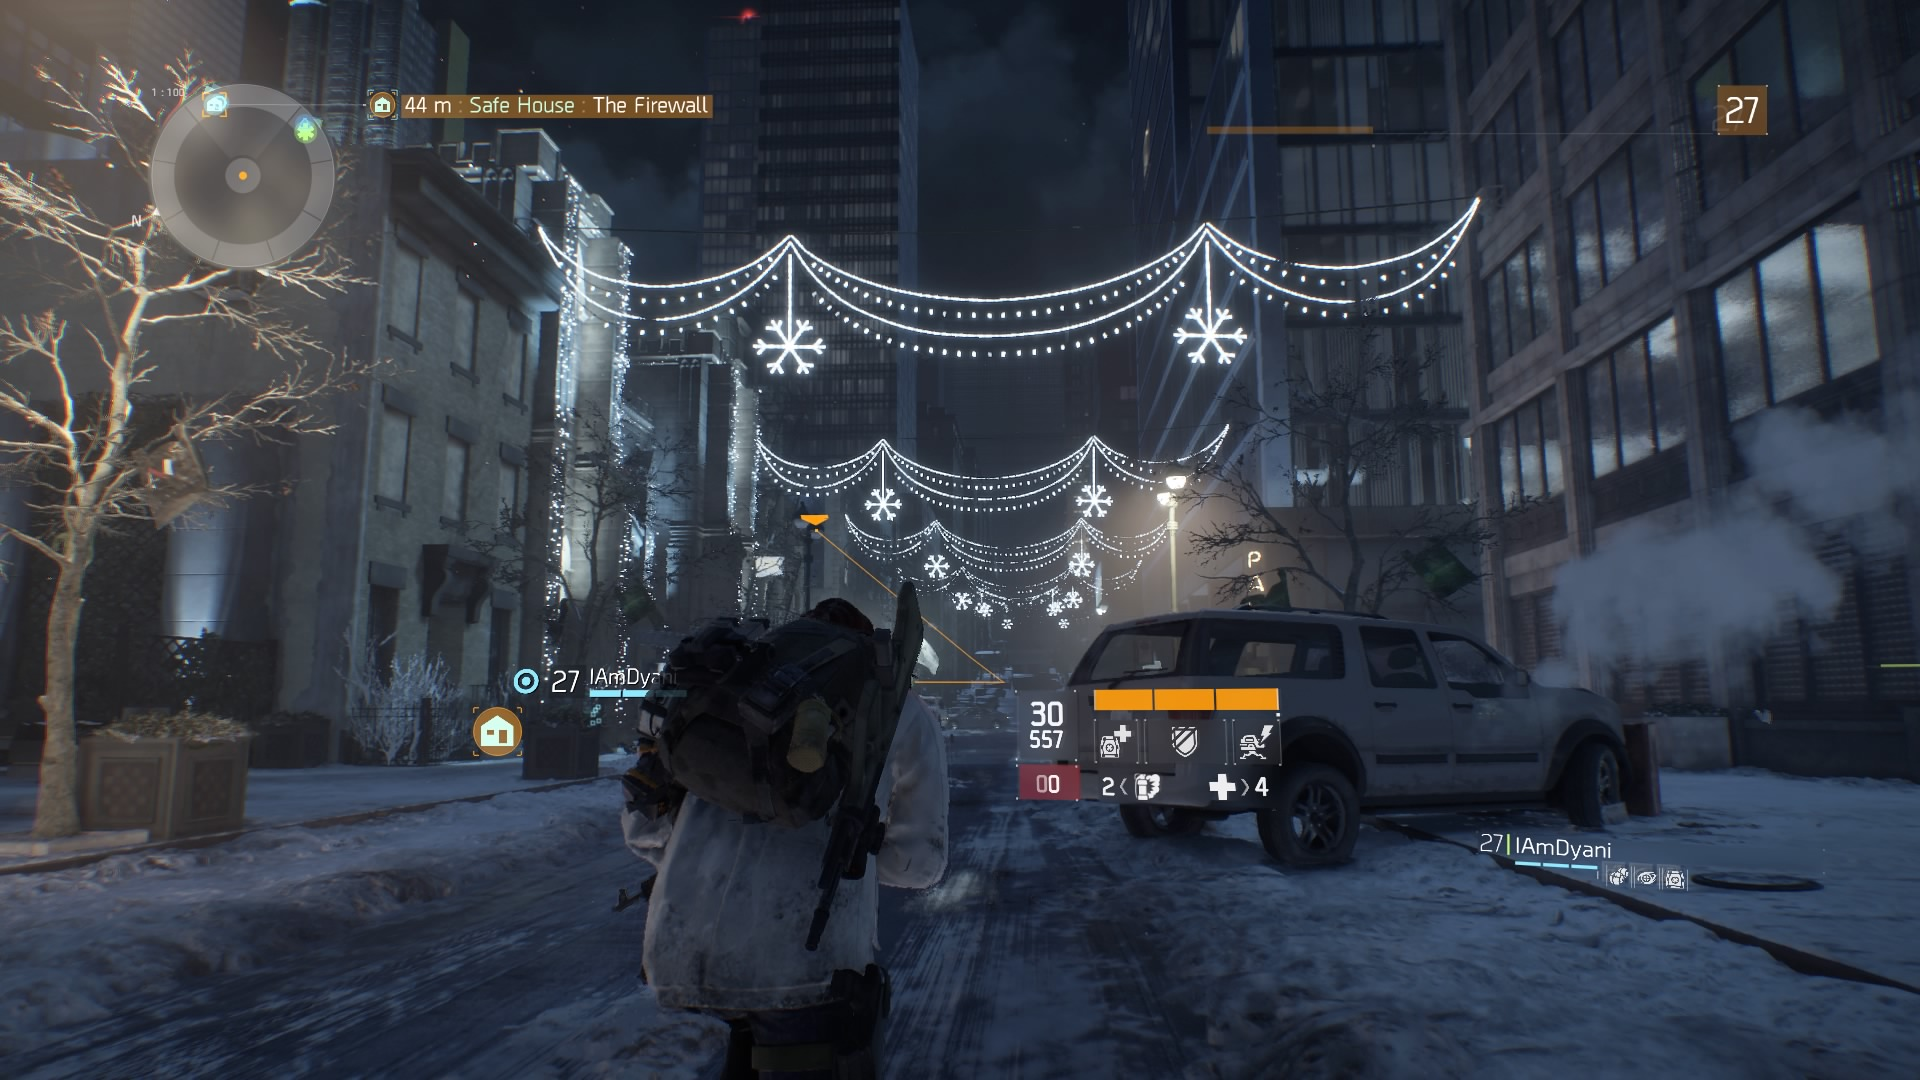 Tom Clancy's The Division Review - Worth the Wait (PS4)